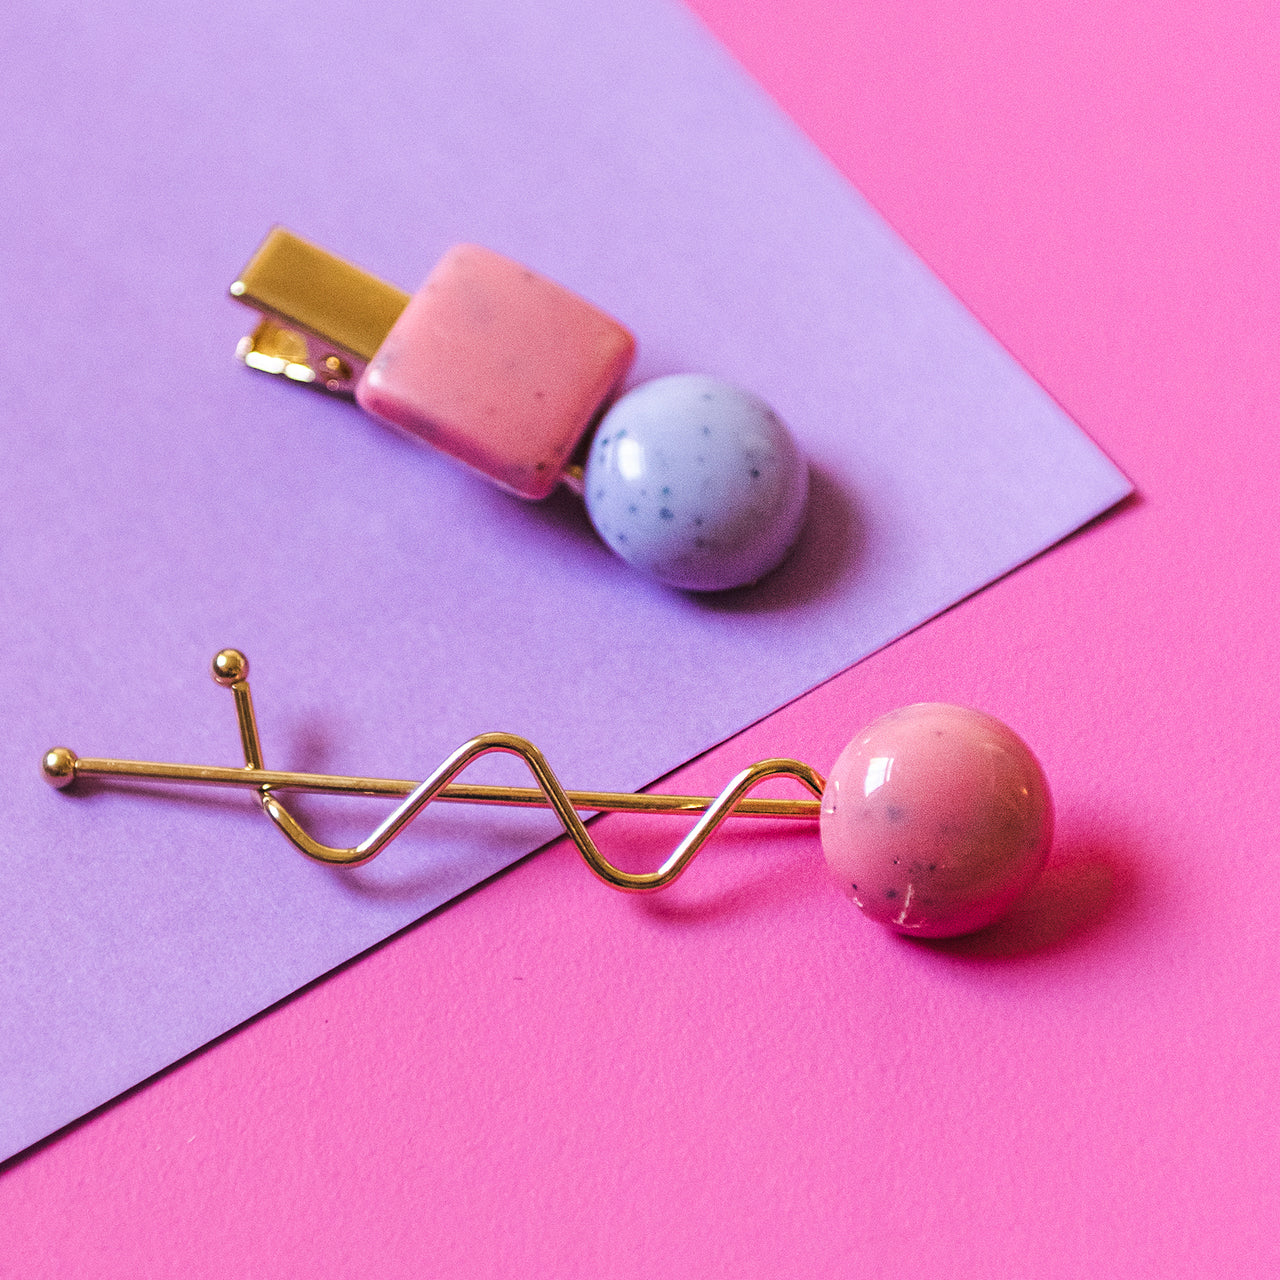 Pink & Lavender Speckled Bobble Hair Clip & Hair Pin Set